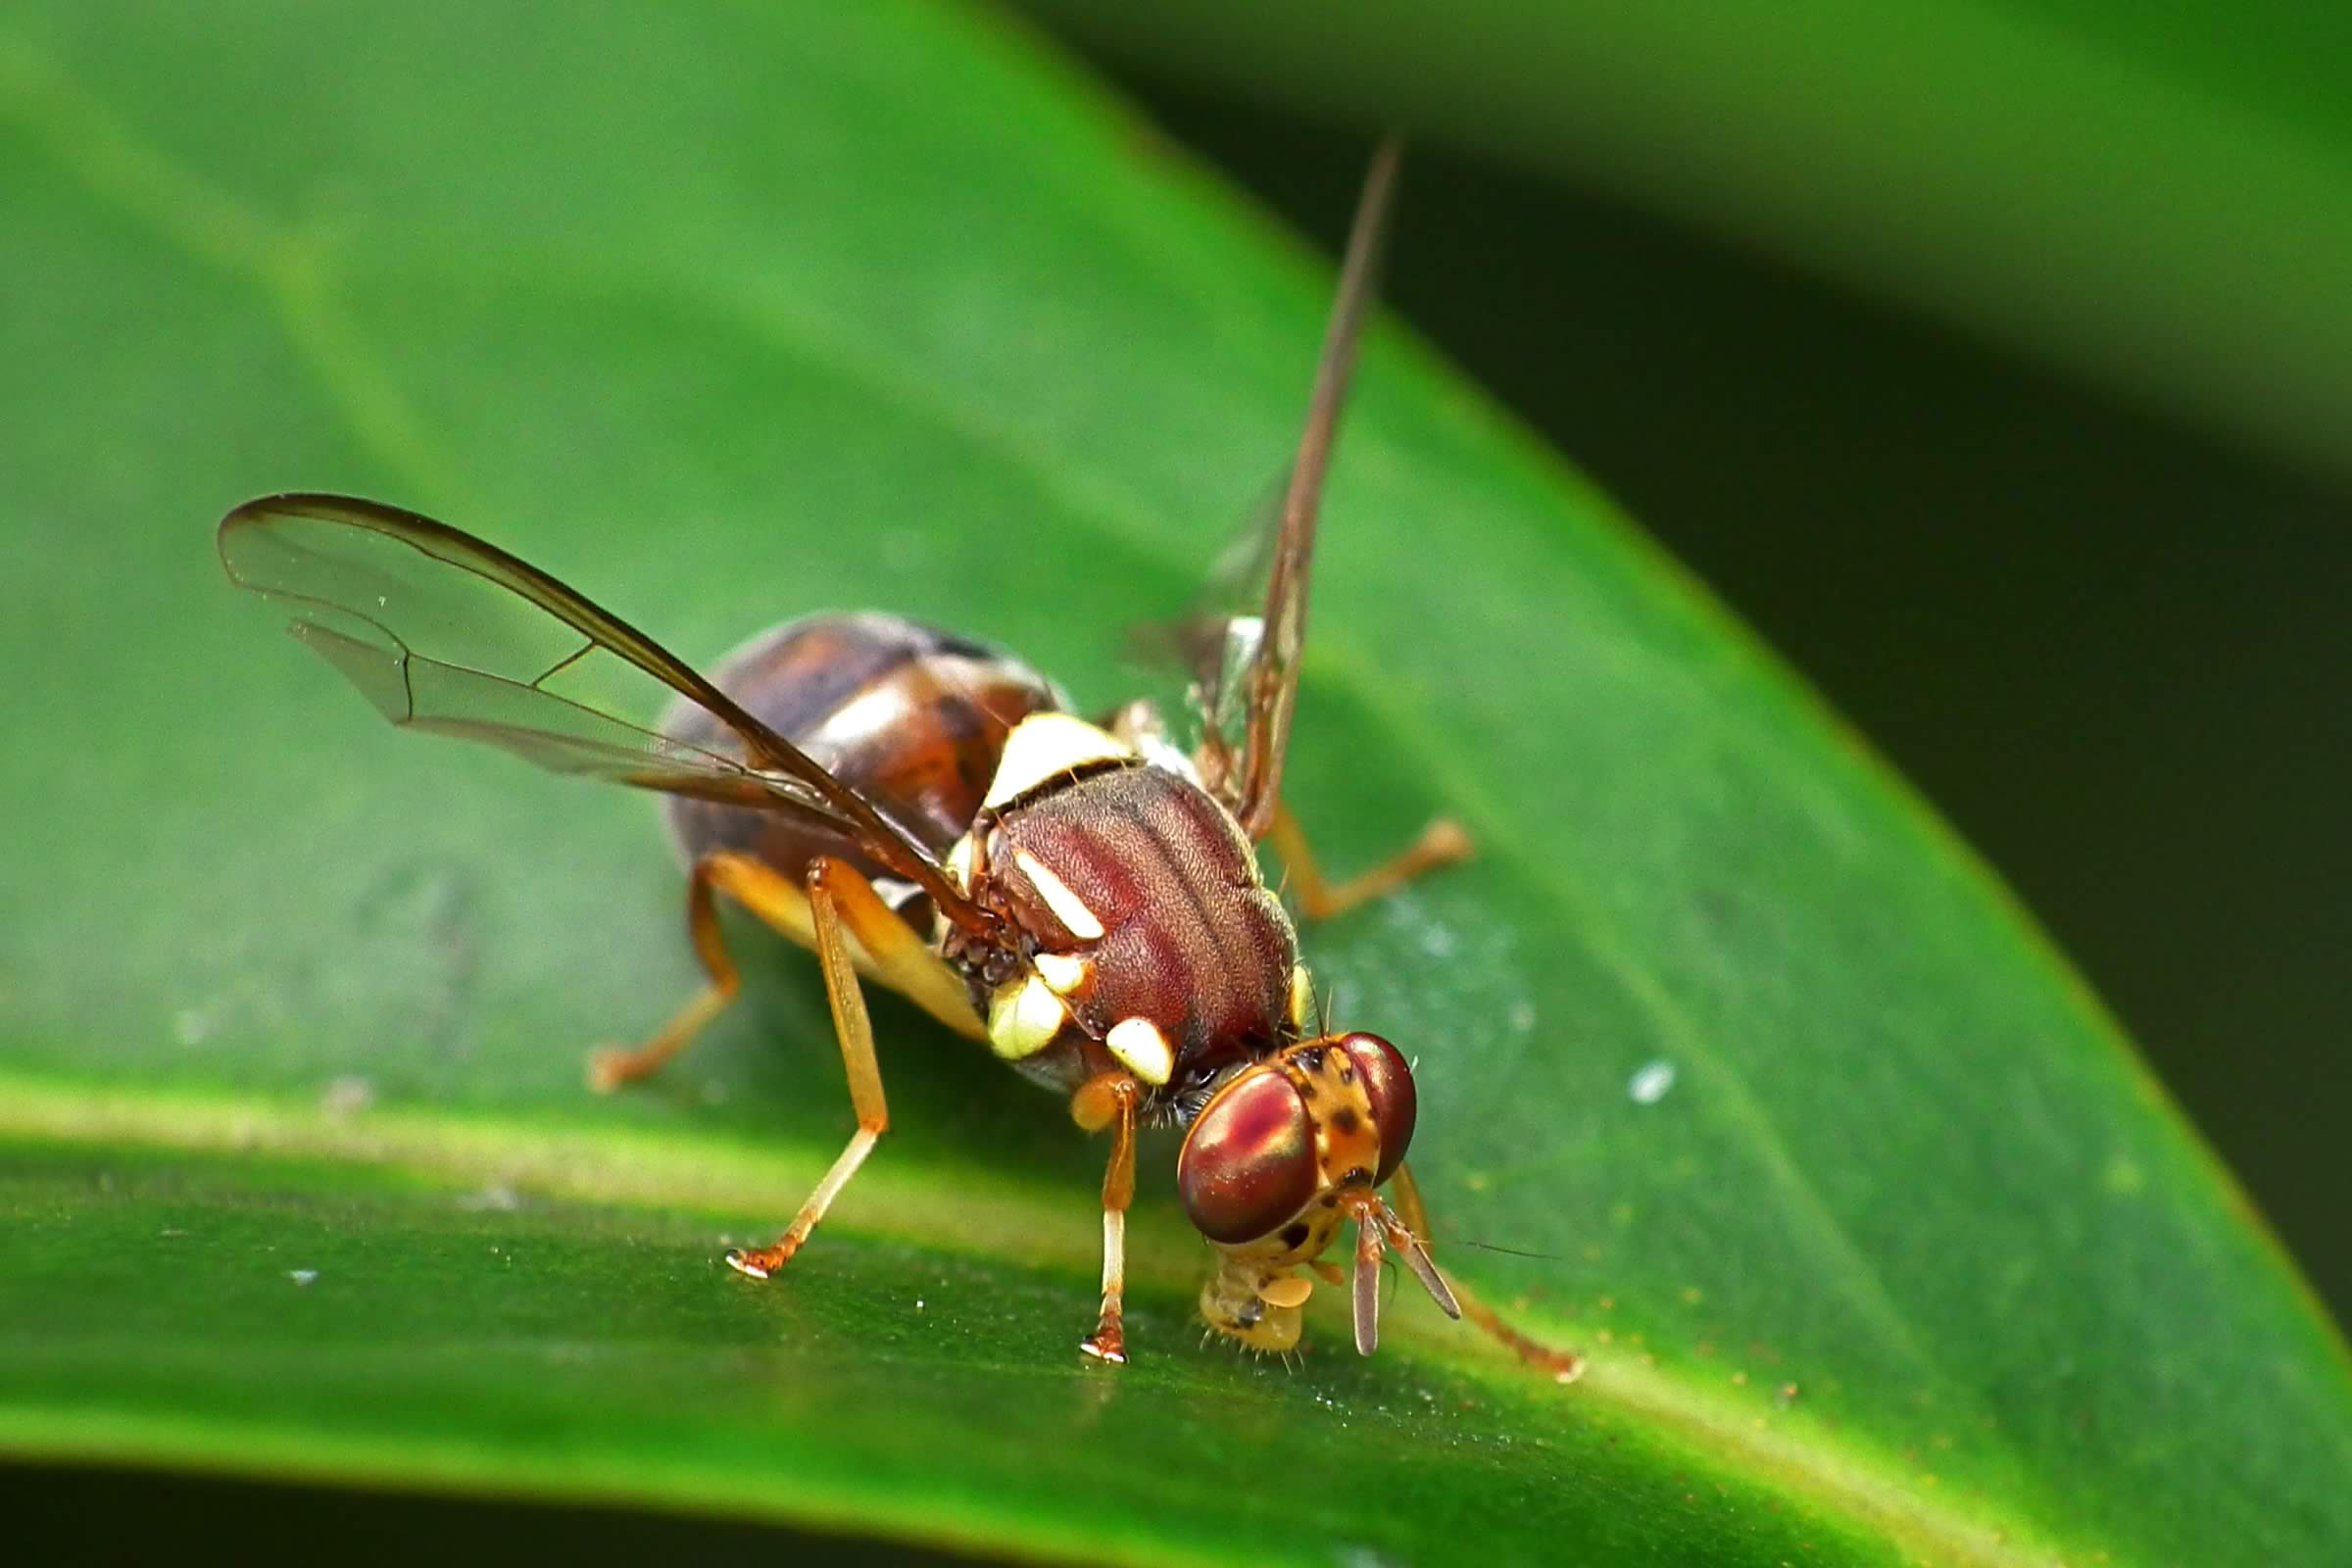 Queensland Fruit Fly – Bactrocera tryoni